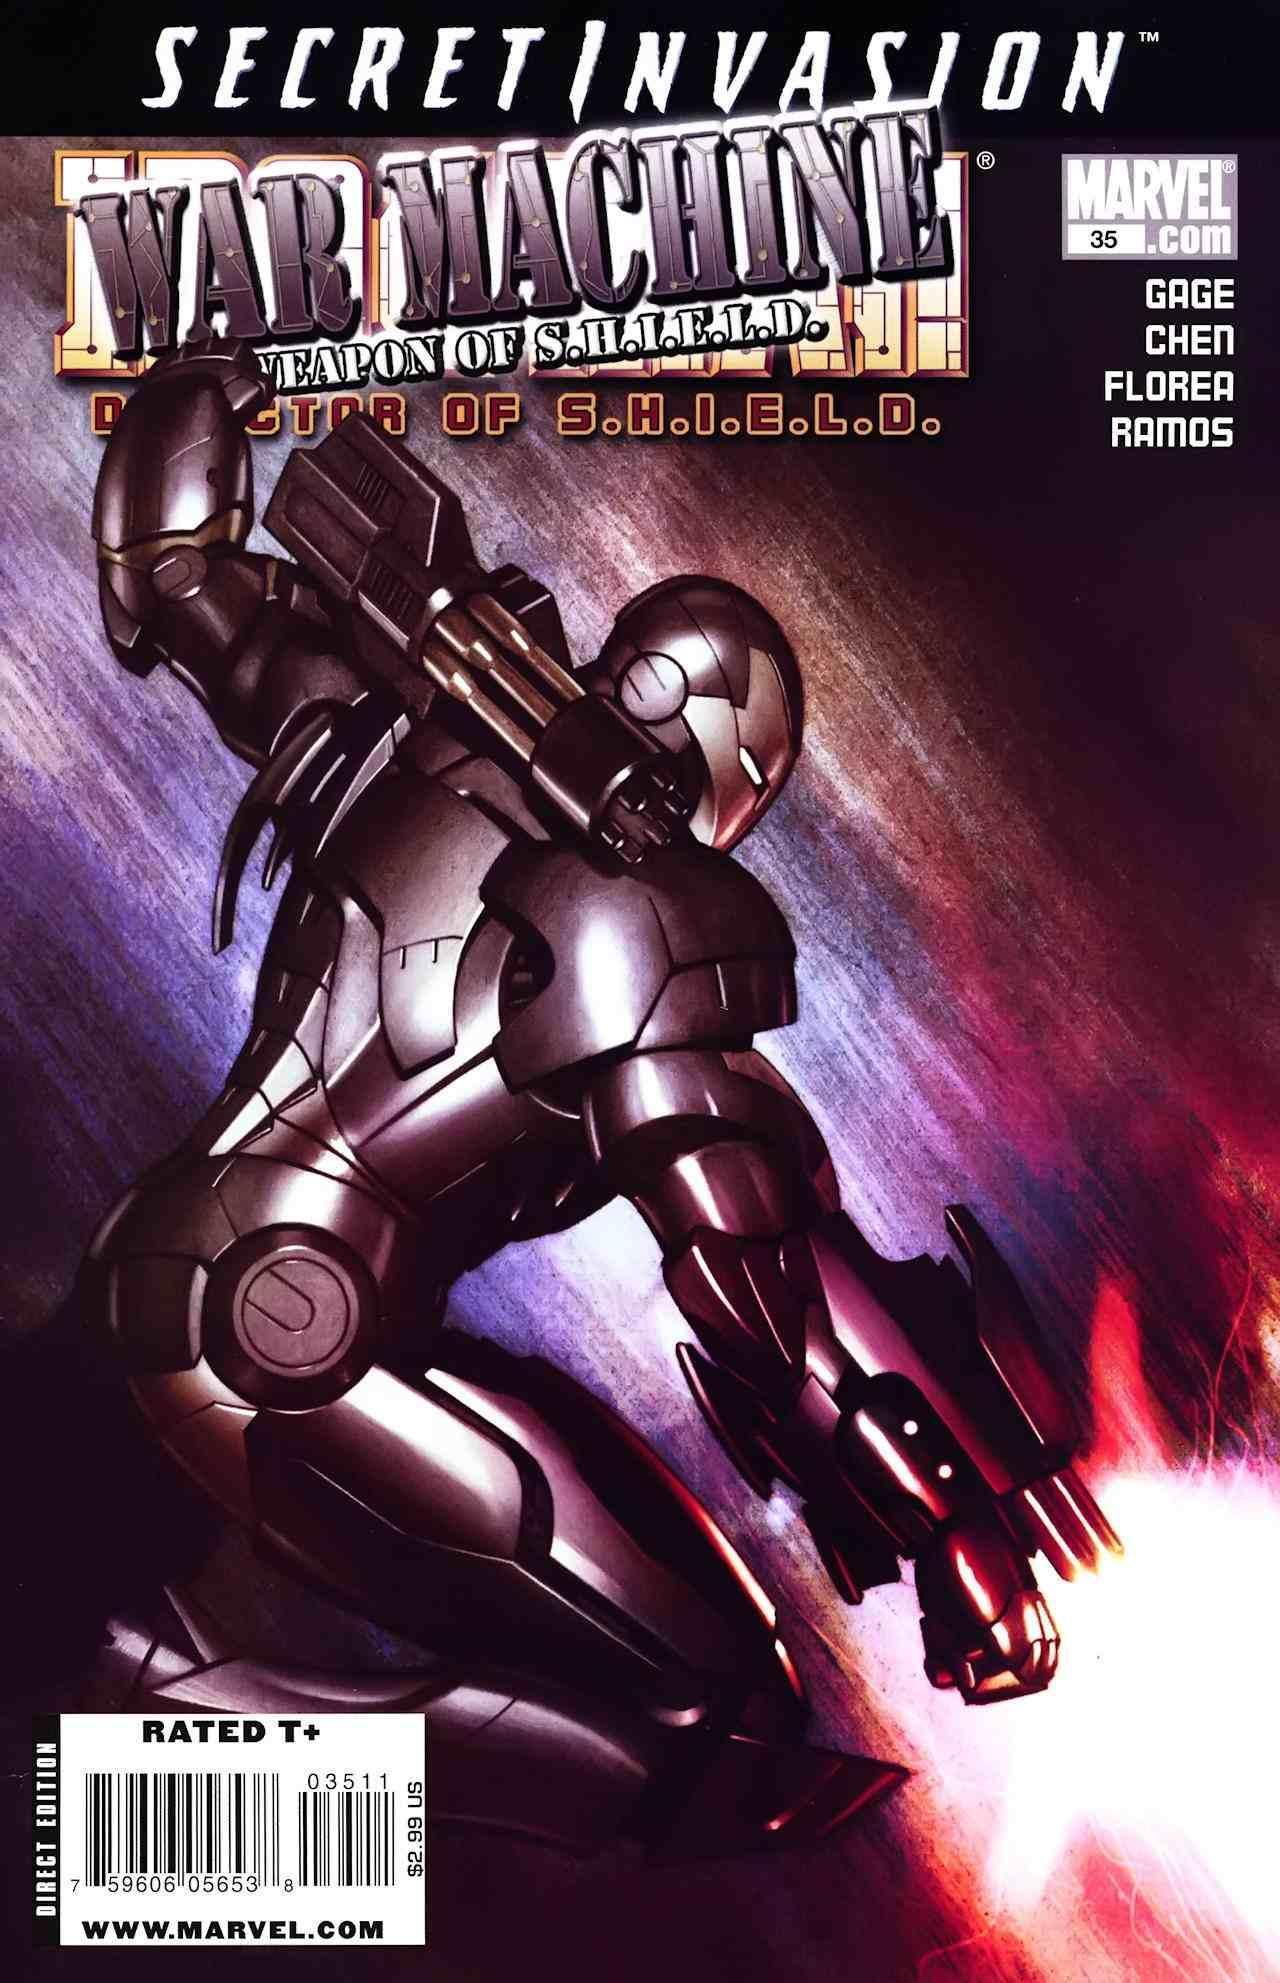 Iron Man: Director of S.H.I.E.L.D. Vol 1 35